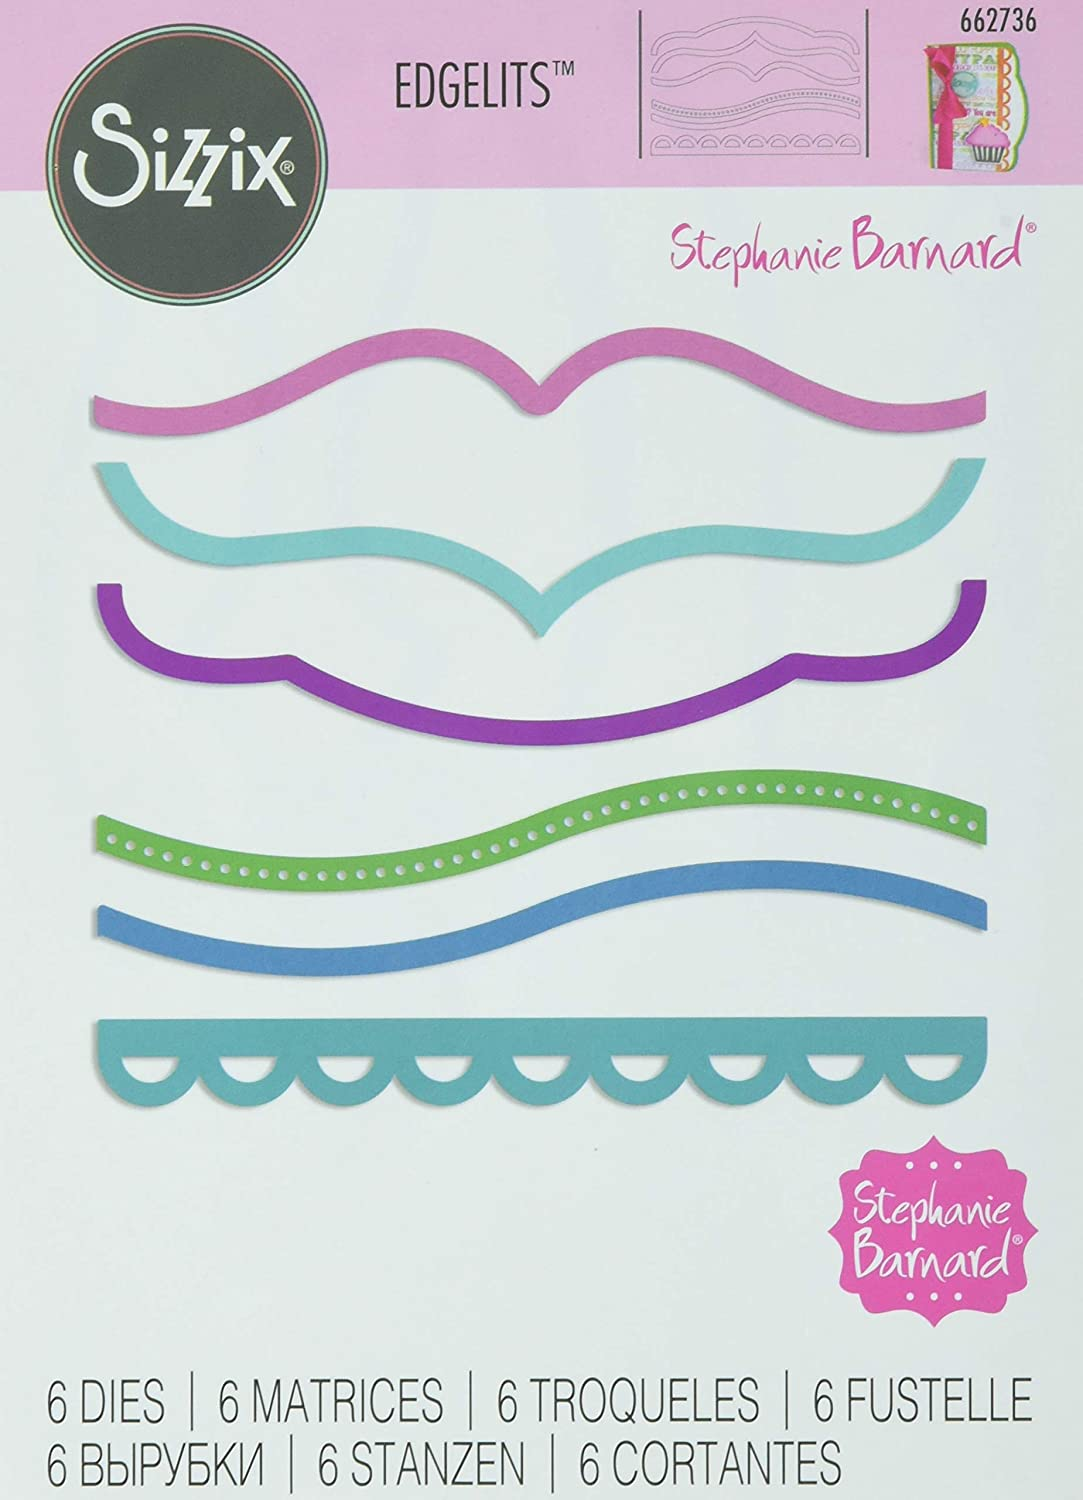 Sizzix Die Set 662736, Brackets, Bevels & Lace by Stephanie Barnard, 6 Pack, Multi Color, One Size Edgelits, Multicolor